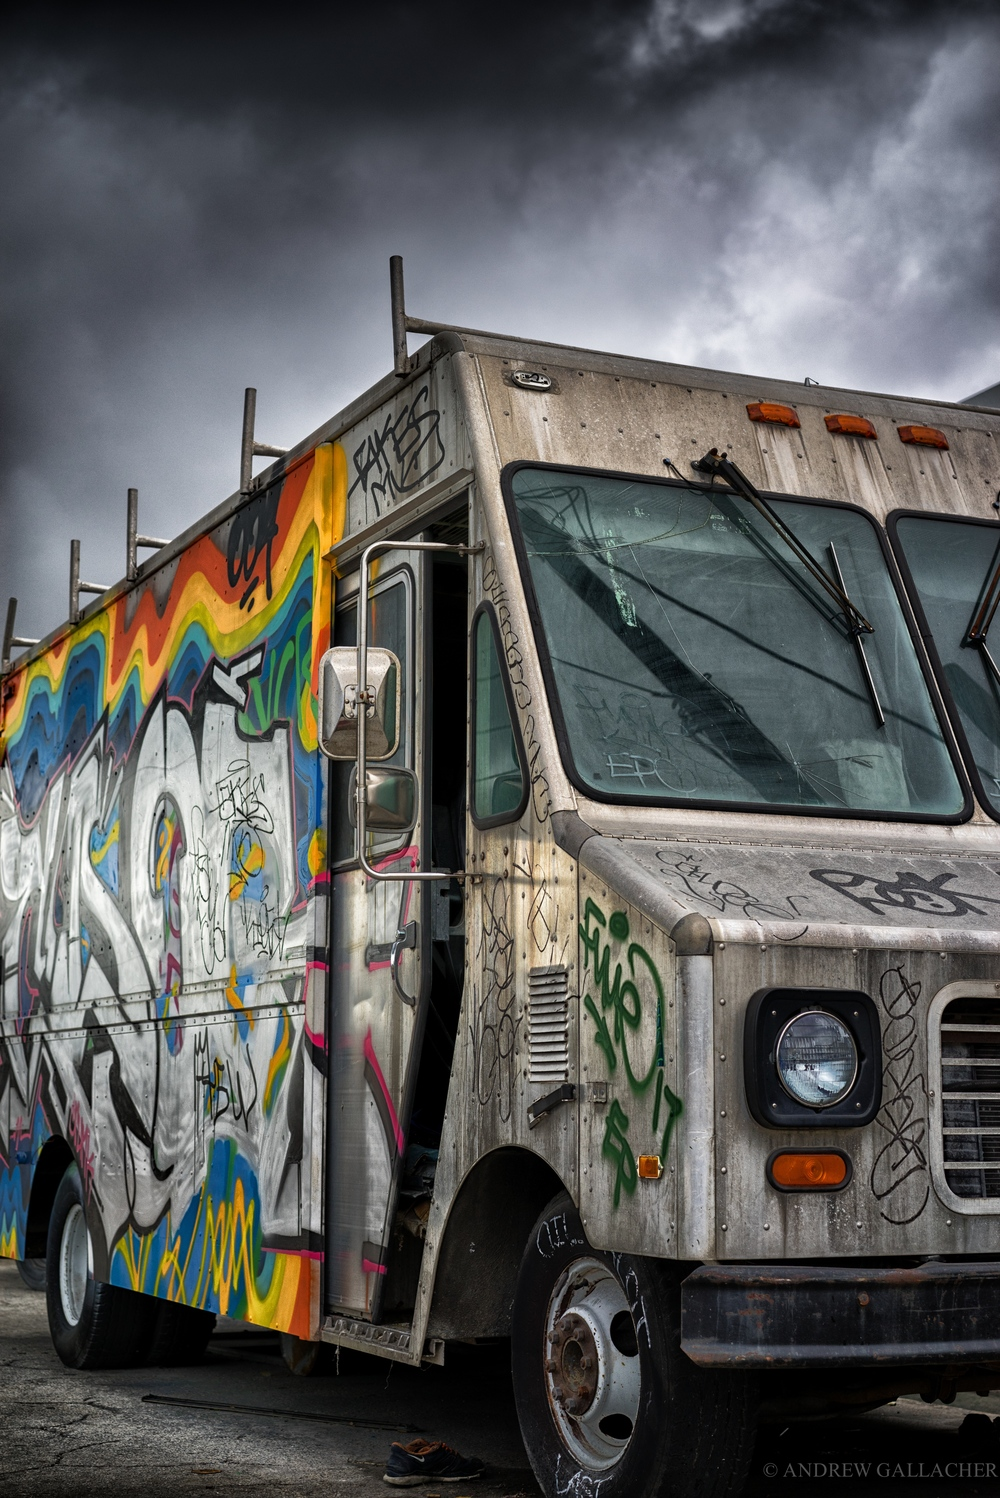 A7R in the Wynwood district of Miami.